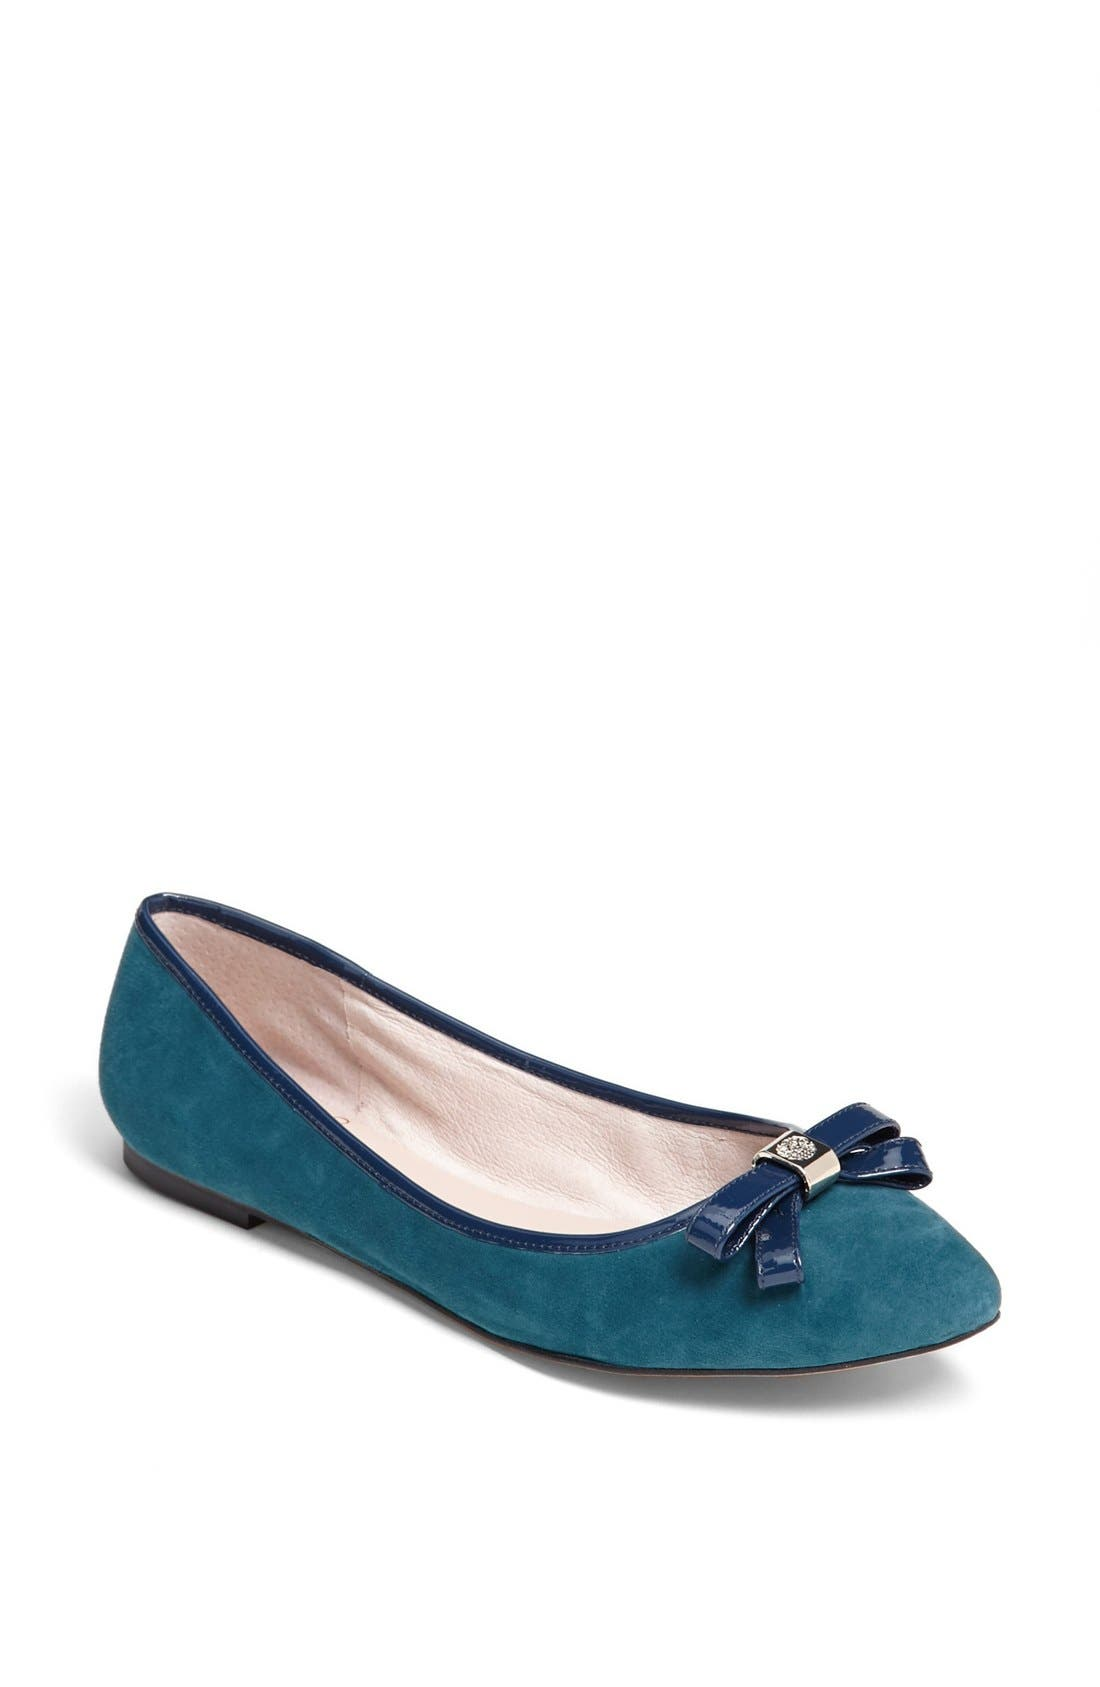 Alternate Image 1 Selected - Vince Camuto 'Timba' Flat